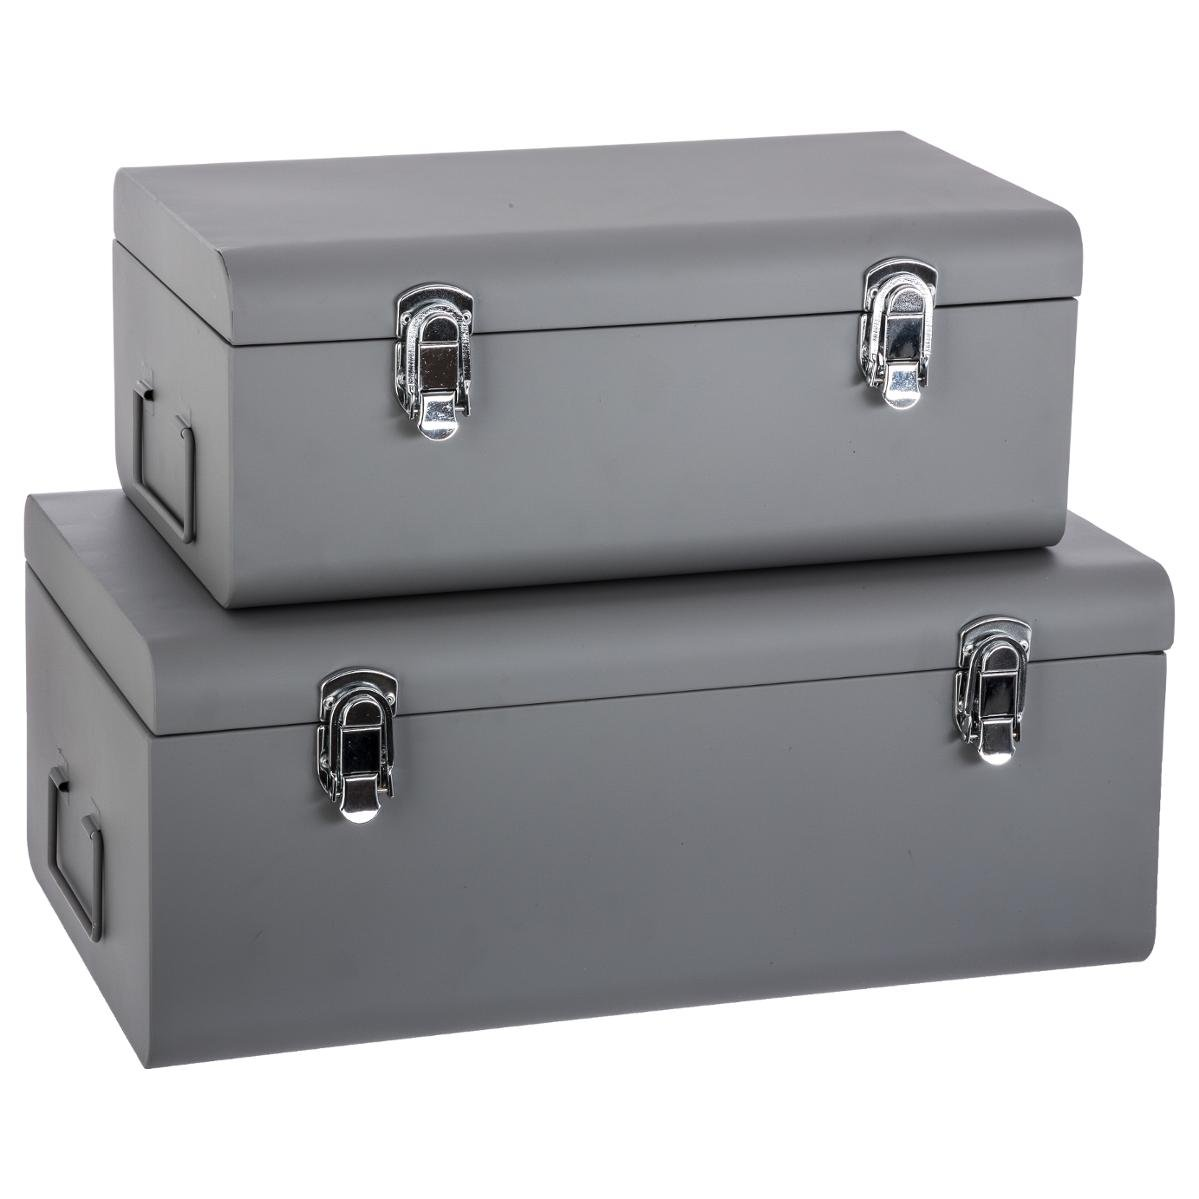 Atmosphera Set of 2 metal storage chests - Trunk design - Colour GREY